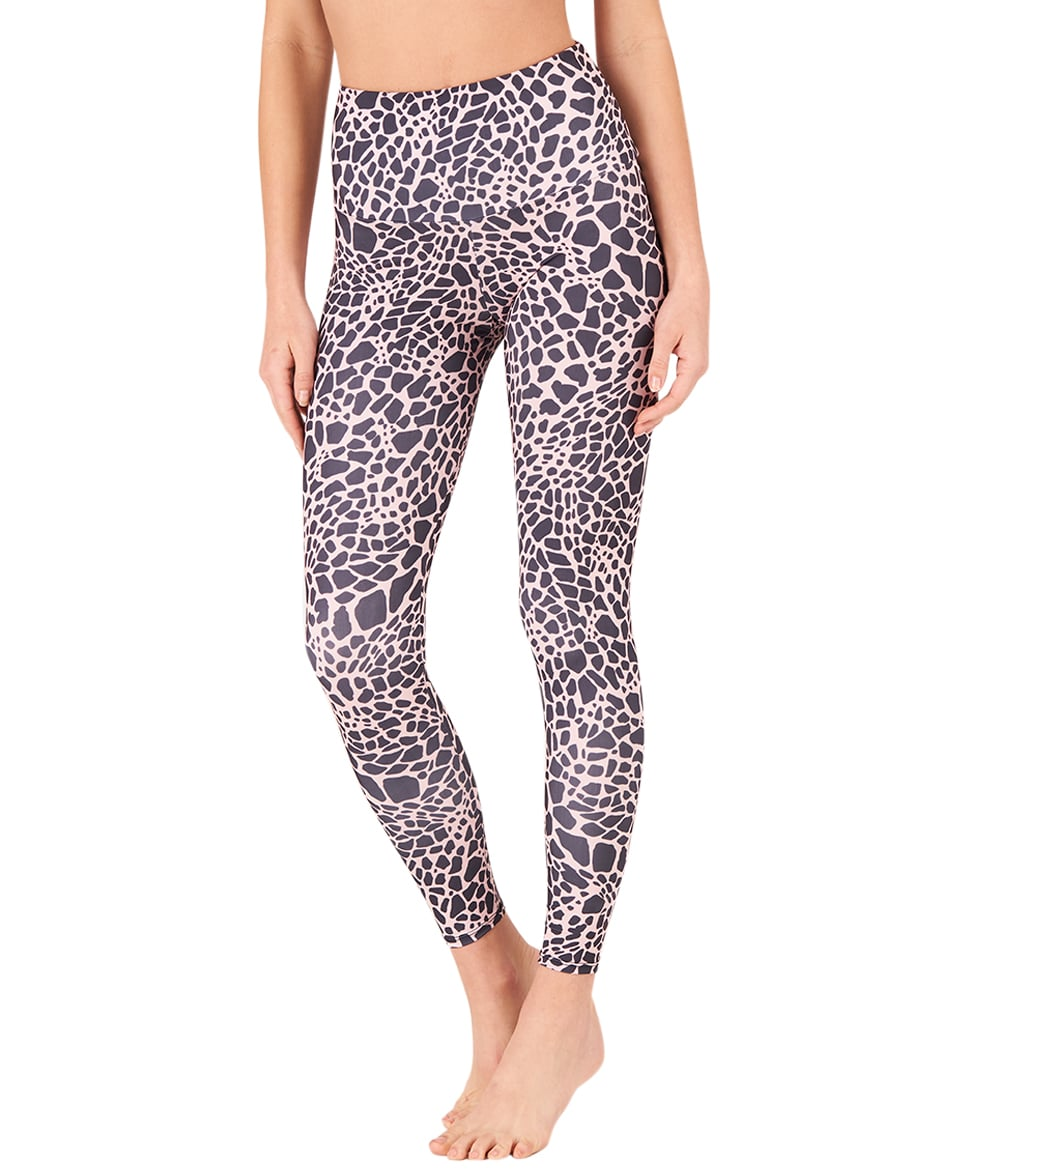 c8fe0980a35 Onzie High Waisted Basic 7 8 Yoga Leggings at YogaOutlet.com - Free ...